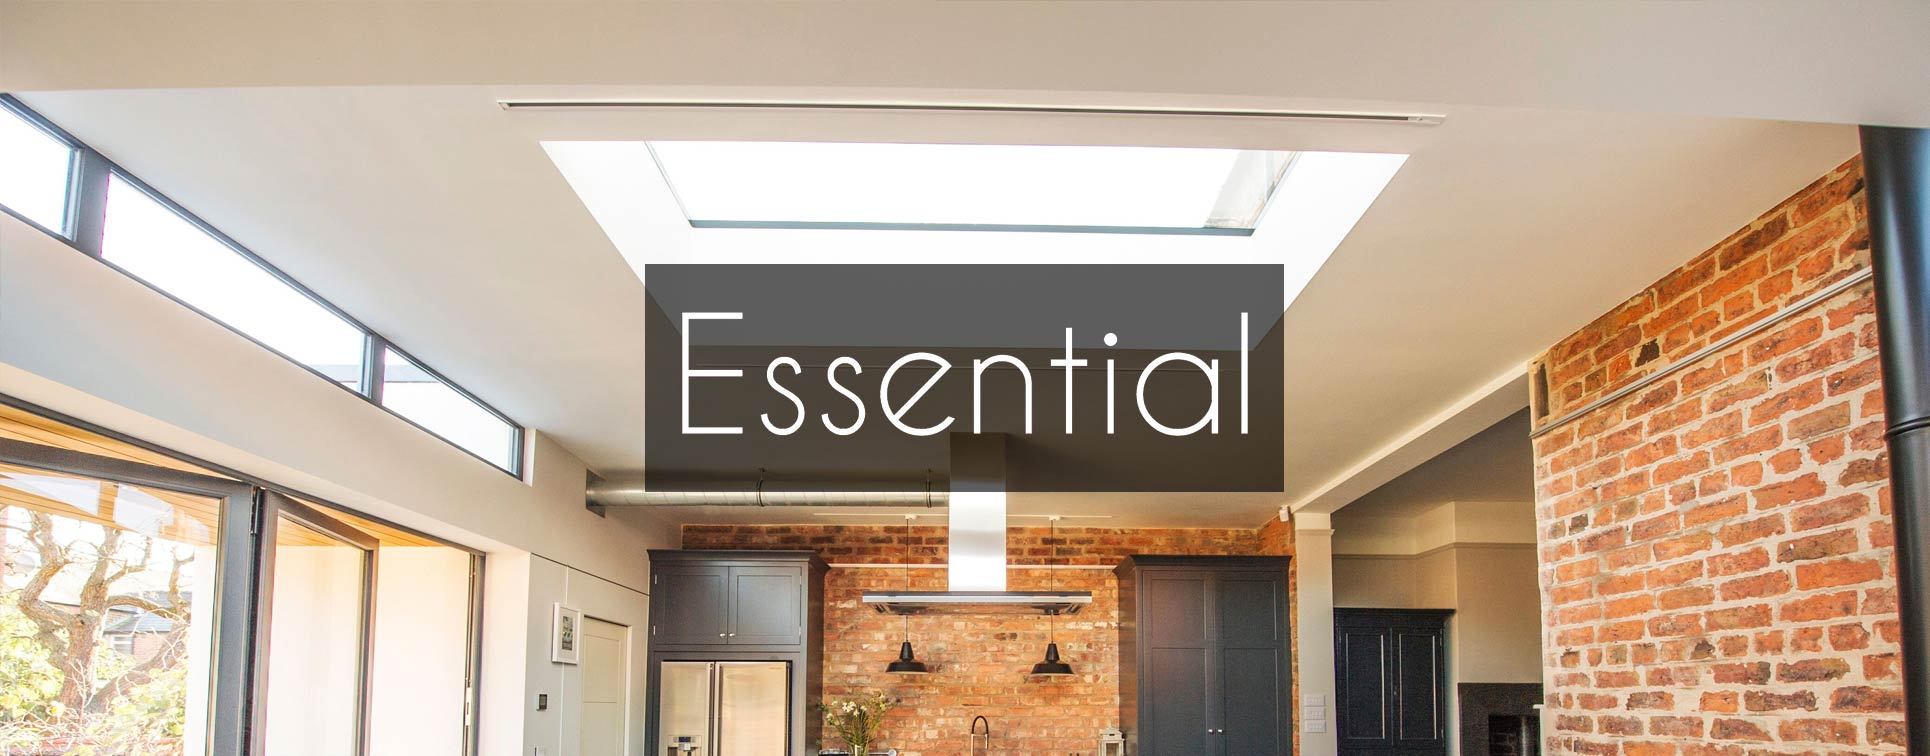 Essential Flat Roof Light